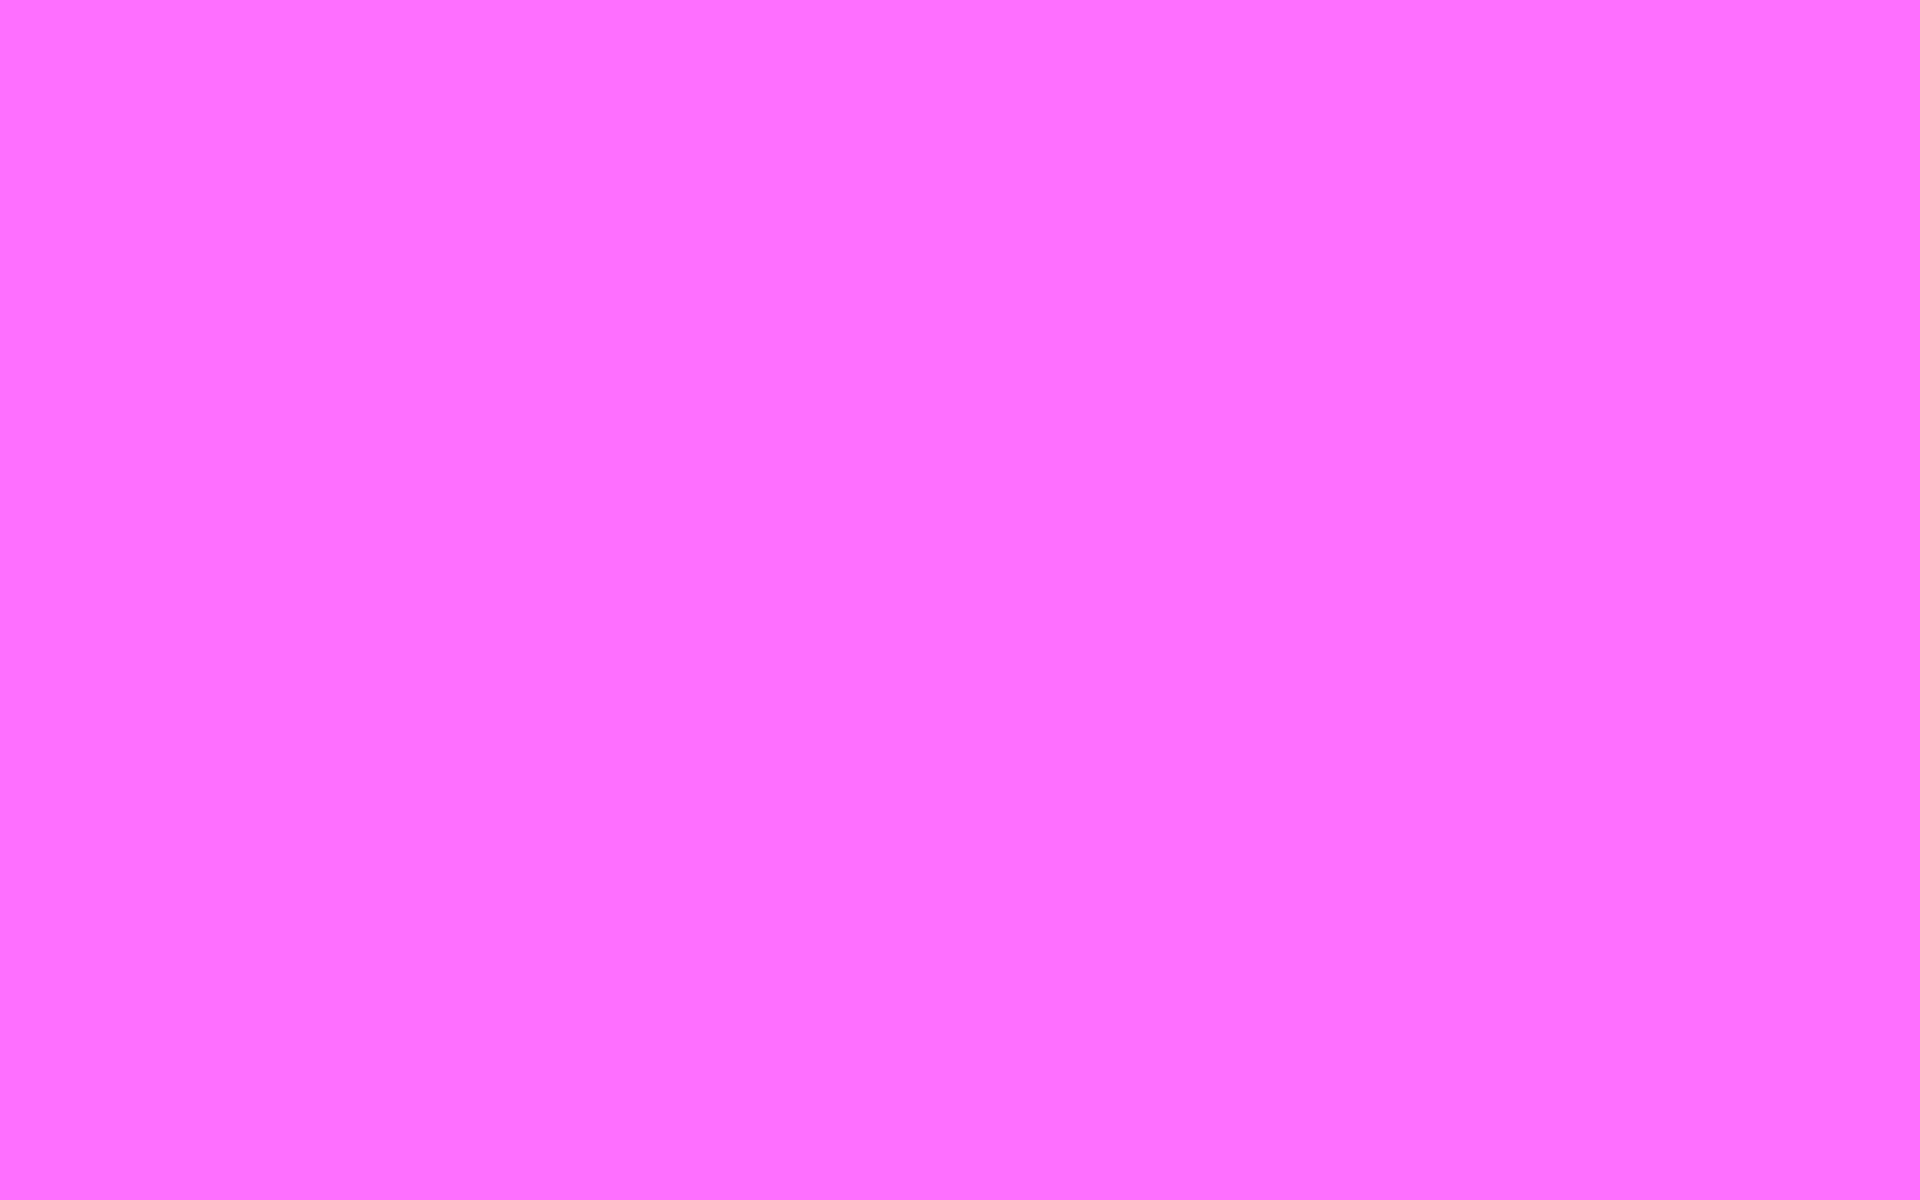 1920x1200 Shocking Pink Crayola Solid Color Background